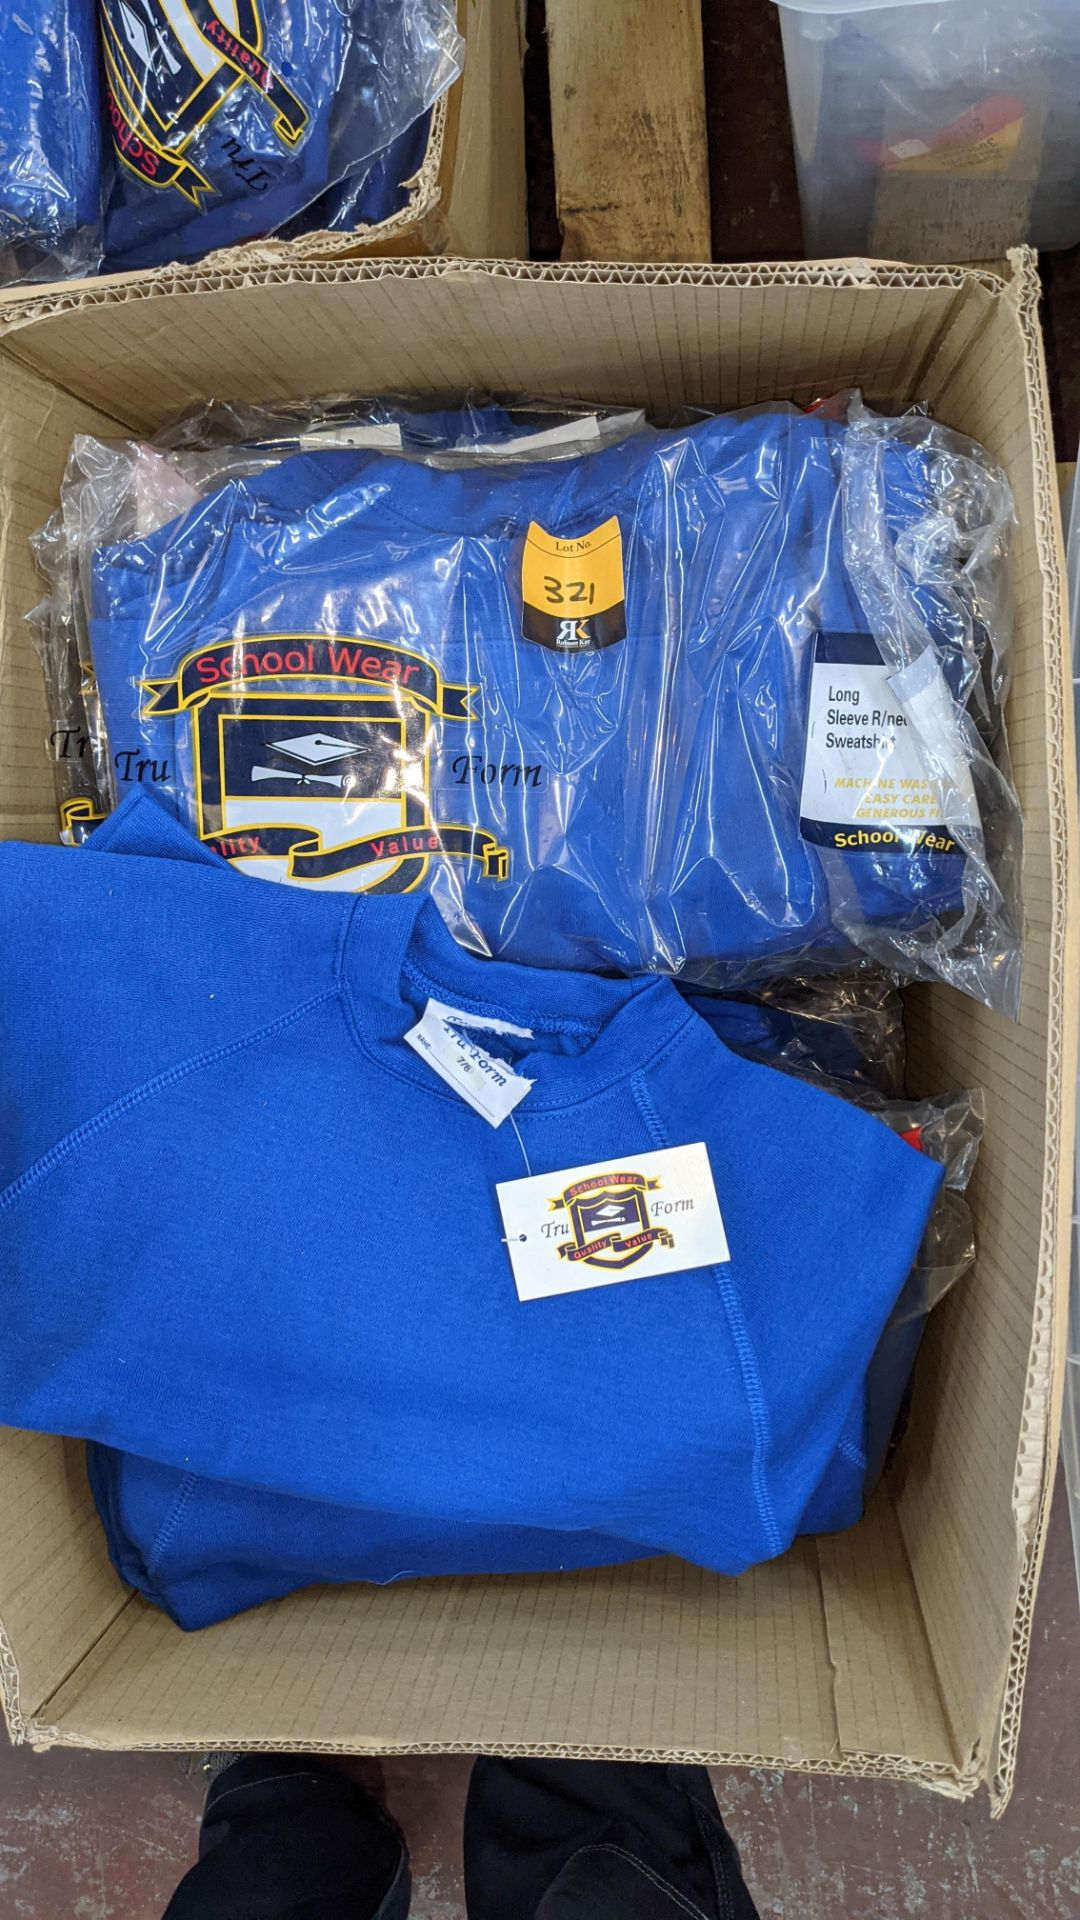 Approx 29 off blue children's sweatshirts & similar - the contents of 1 box - Image 4 of 4